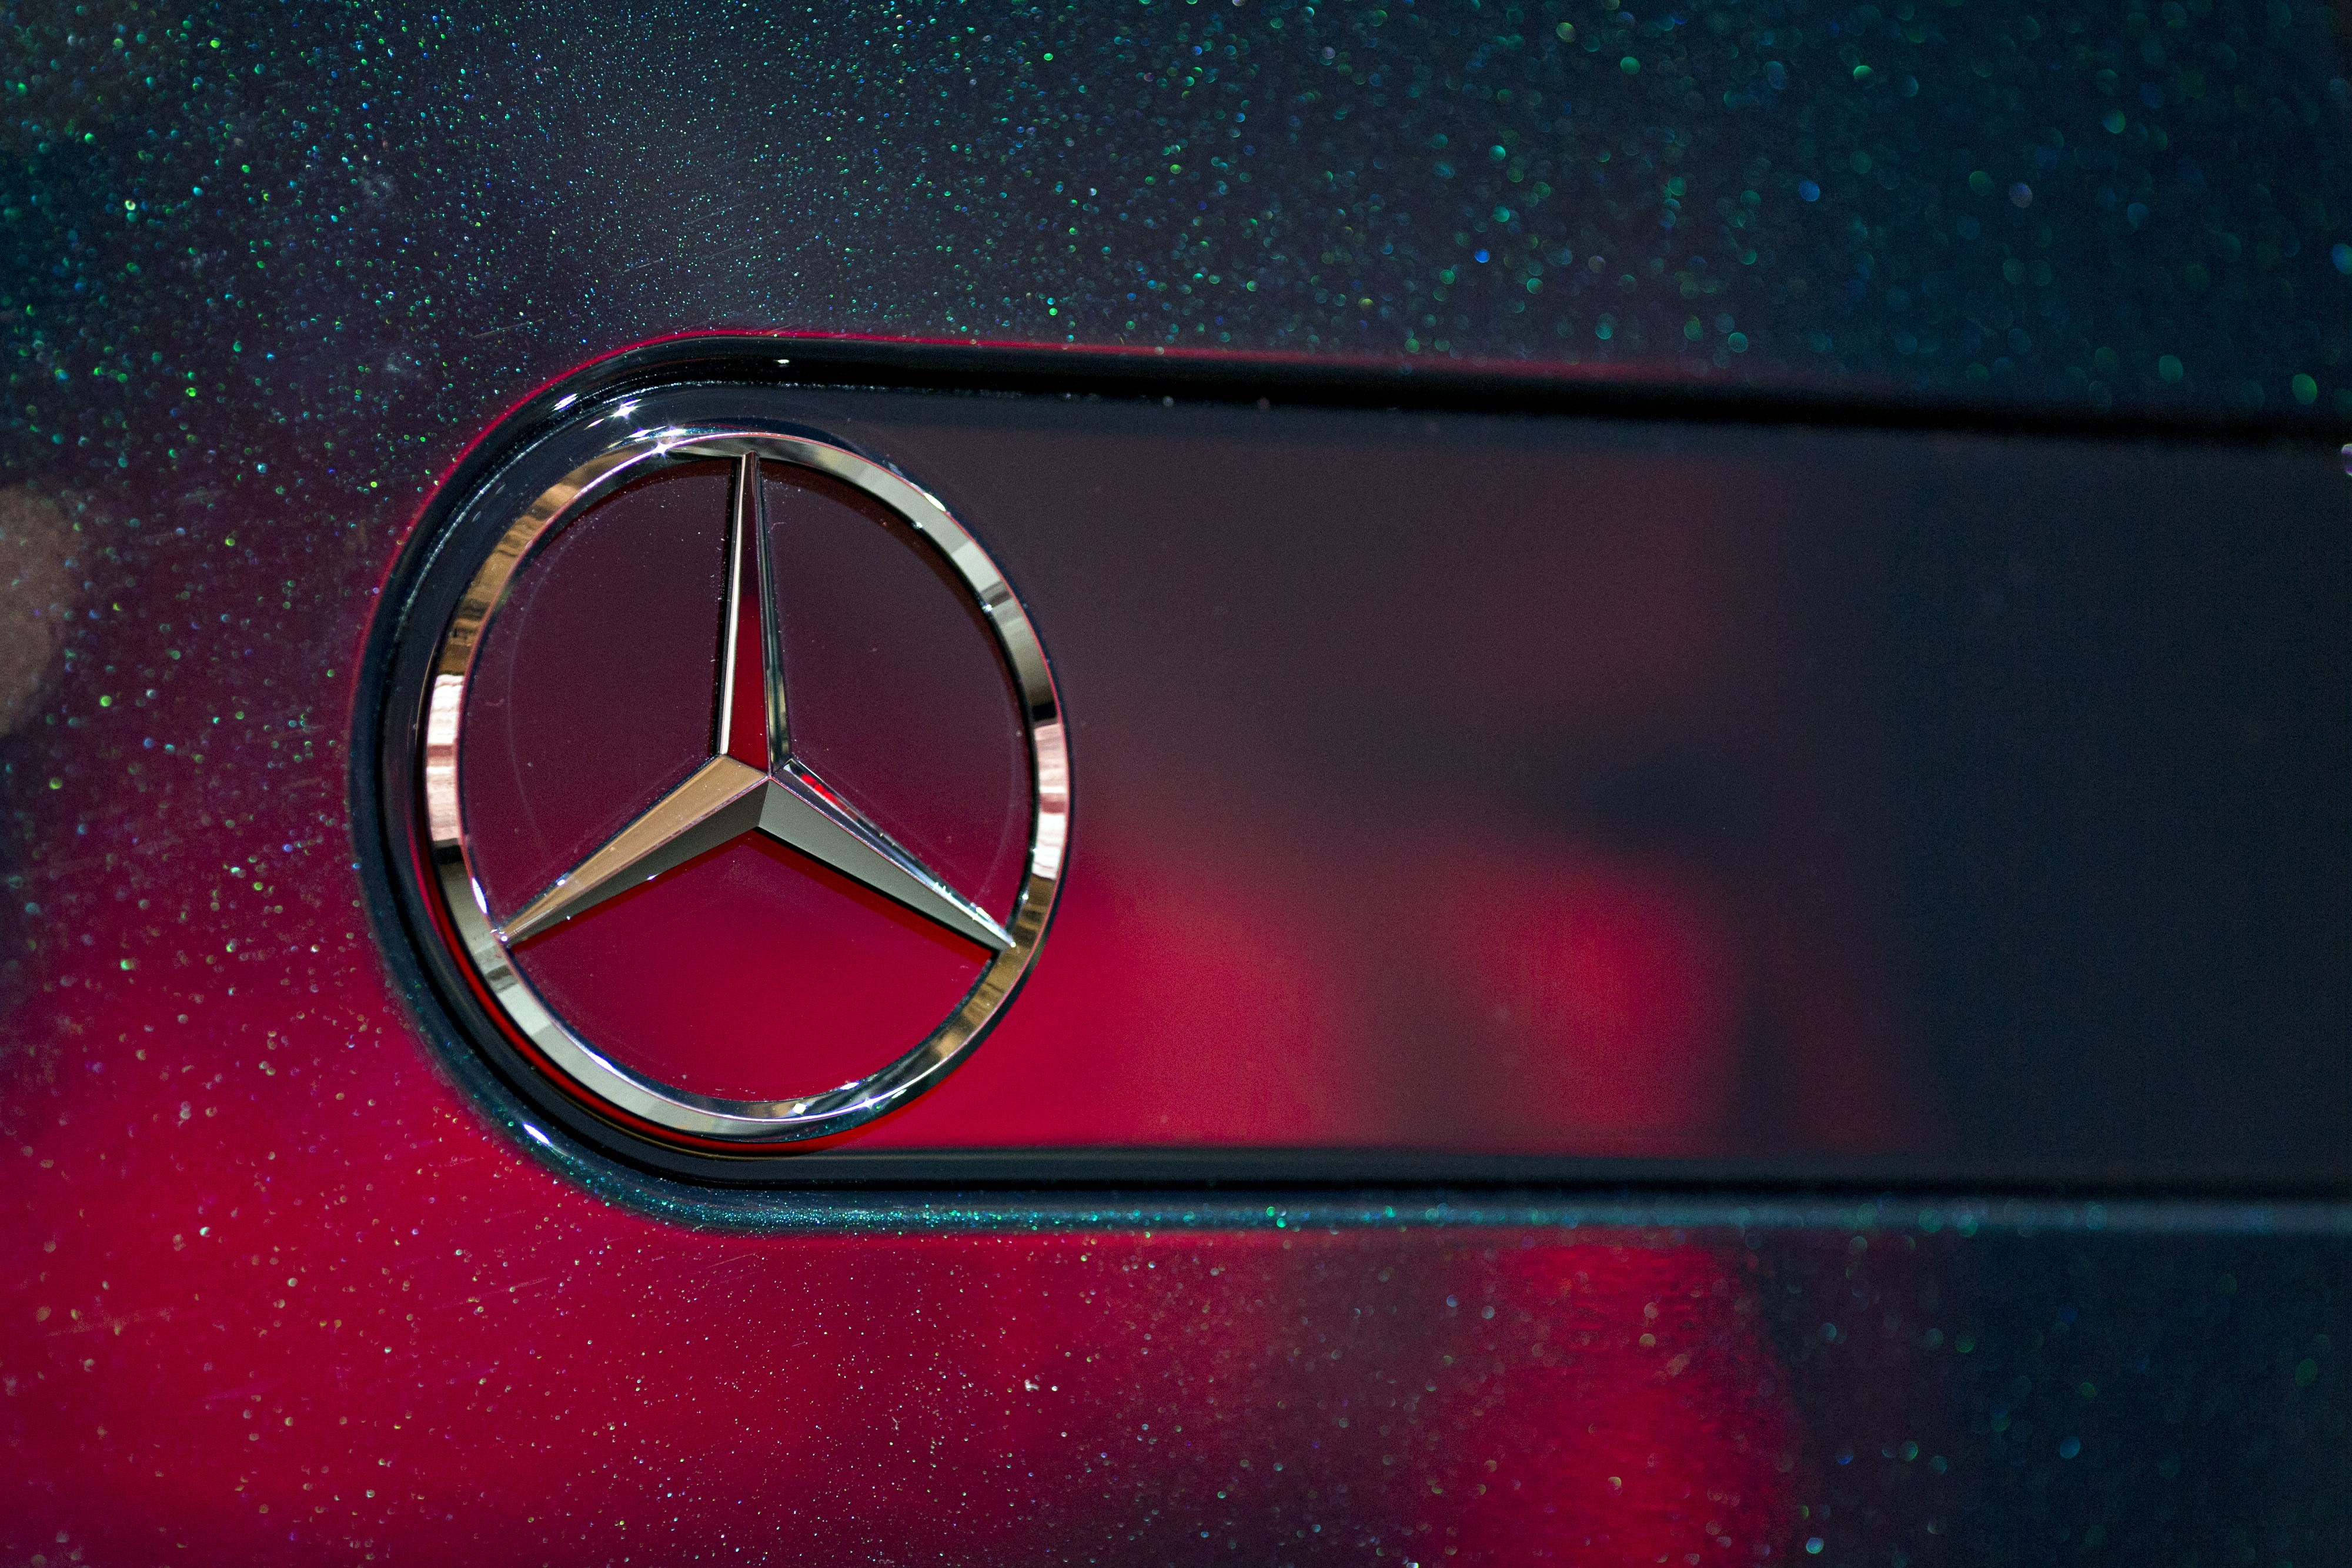 Mercedes benz g wagen gets its first revamp since 1979 style the logo on the daimler ag mercedes benz g class the first completely redesigned so called gelandewagen in 40 years biocorpaavc Image collections